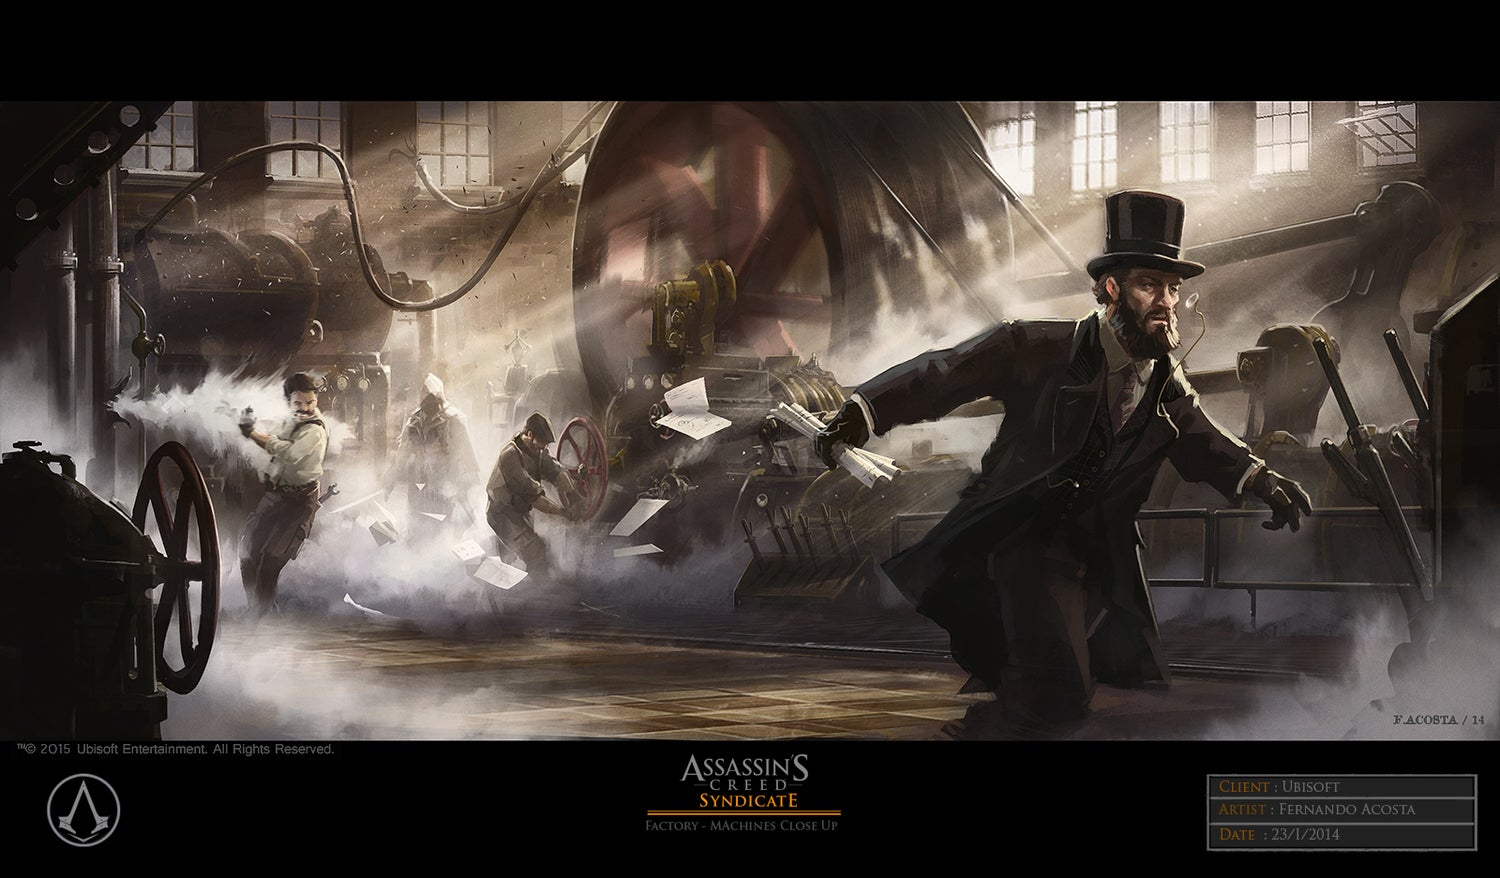 The Very Victorian Concept Art Of Assassin's Creed Syndicate